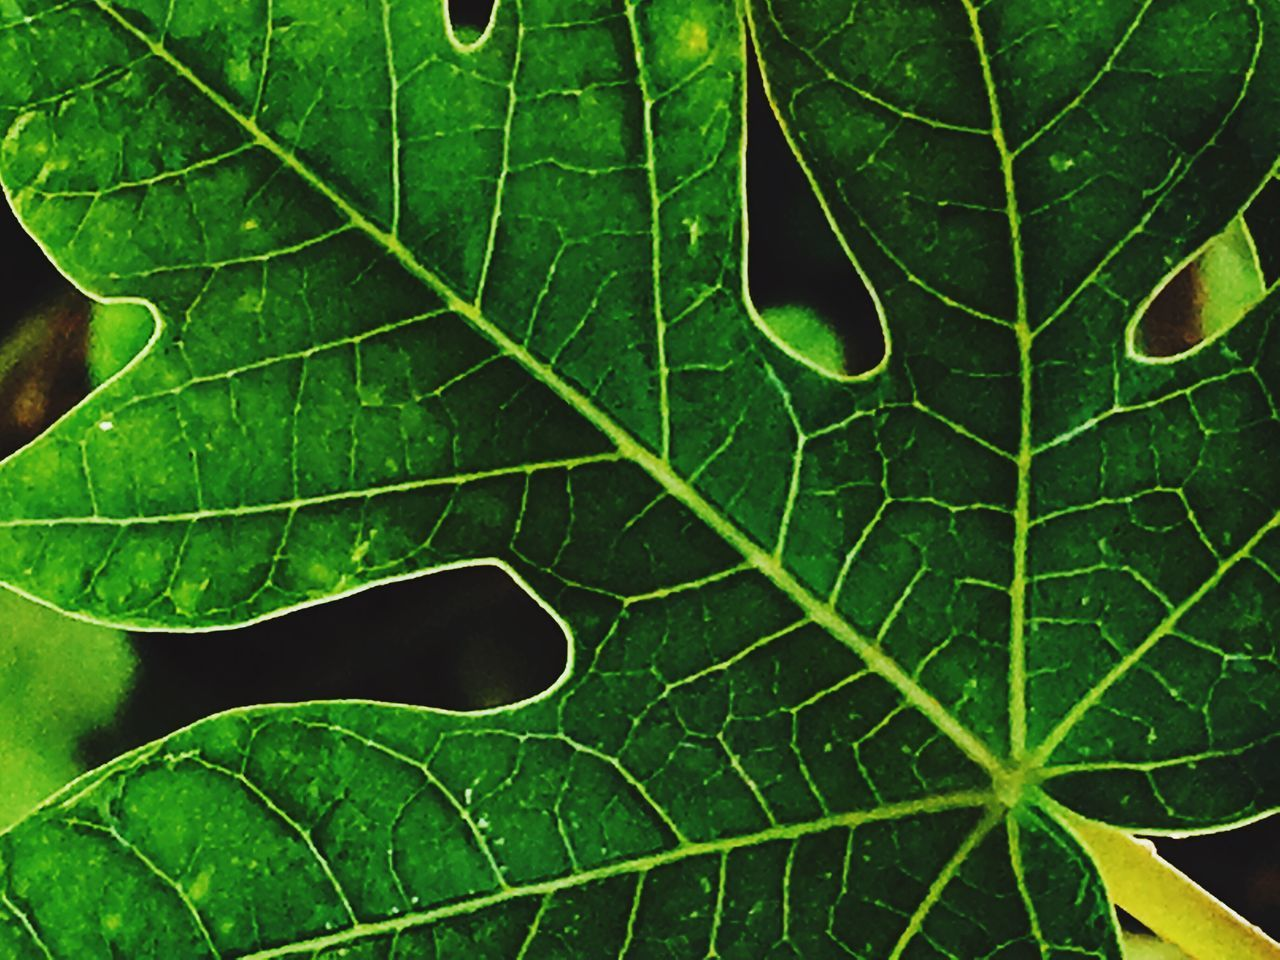 leaf, green color, growth, nature, no people, full frame, plant, day, close-up, backgrounds, outdoors, freshness, beauty in nature, fragility